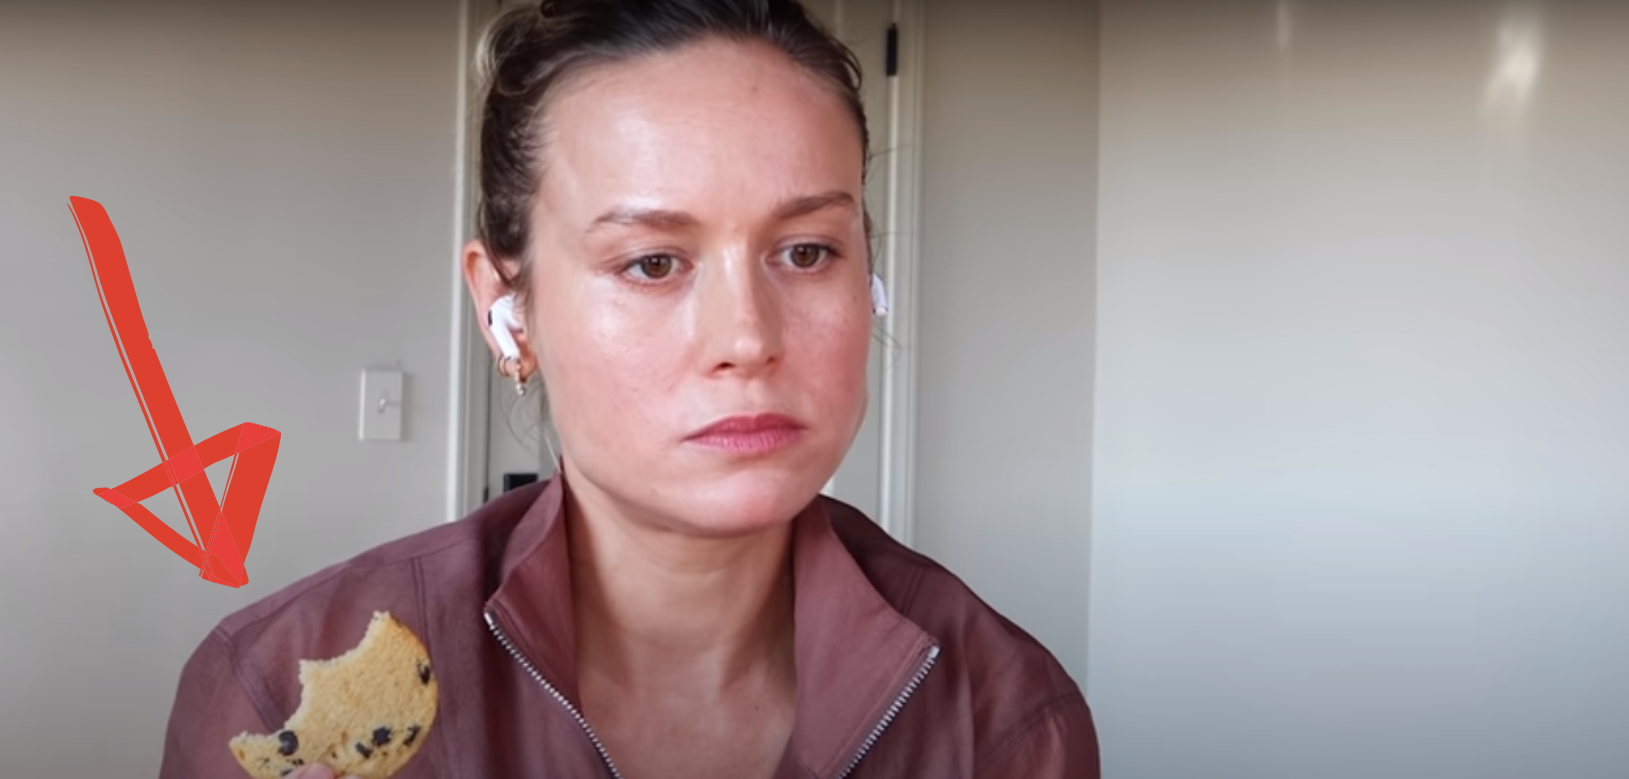 brie larson YouTube workout